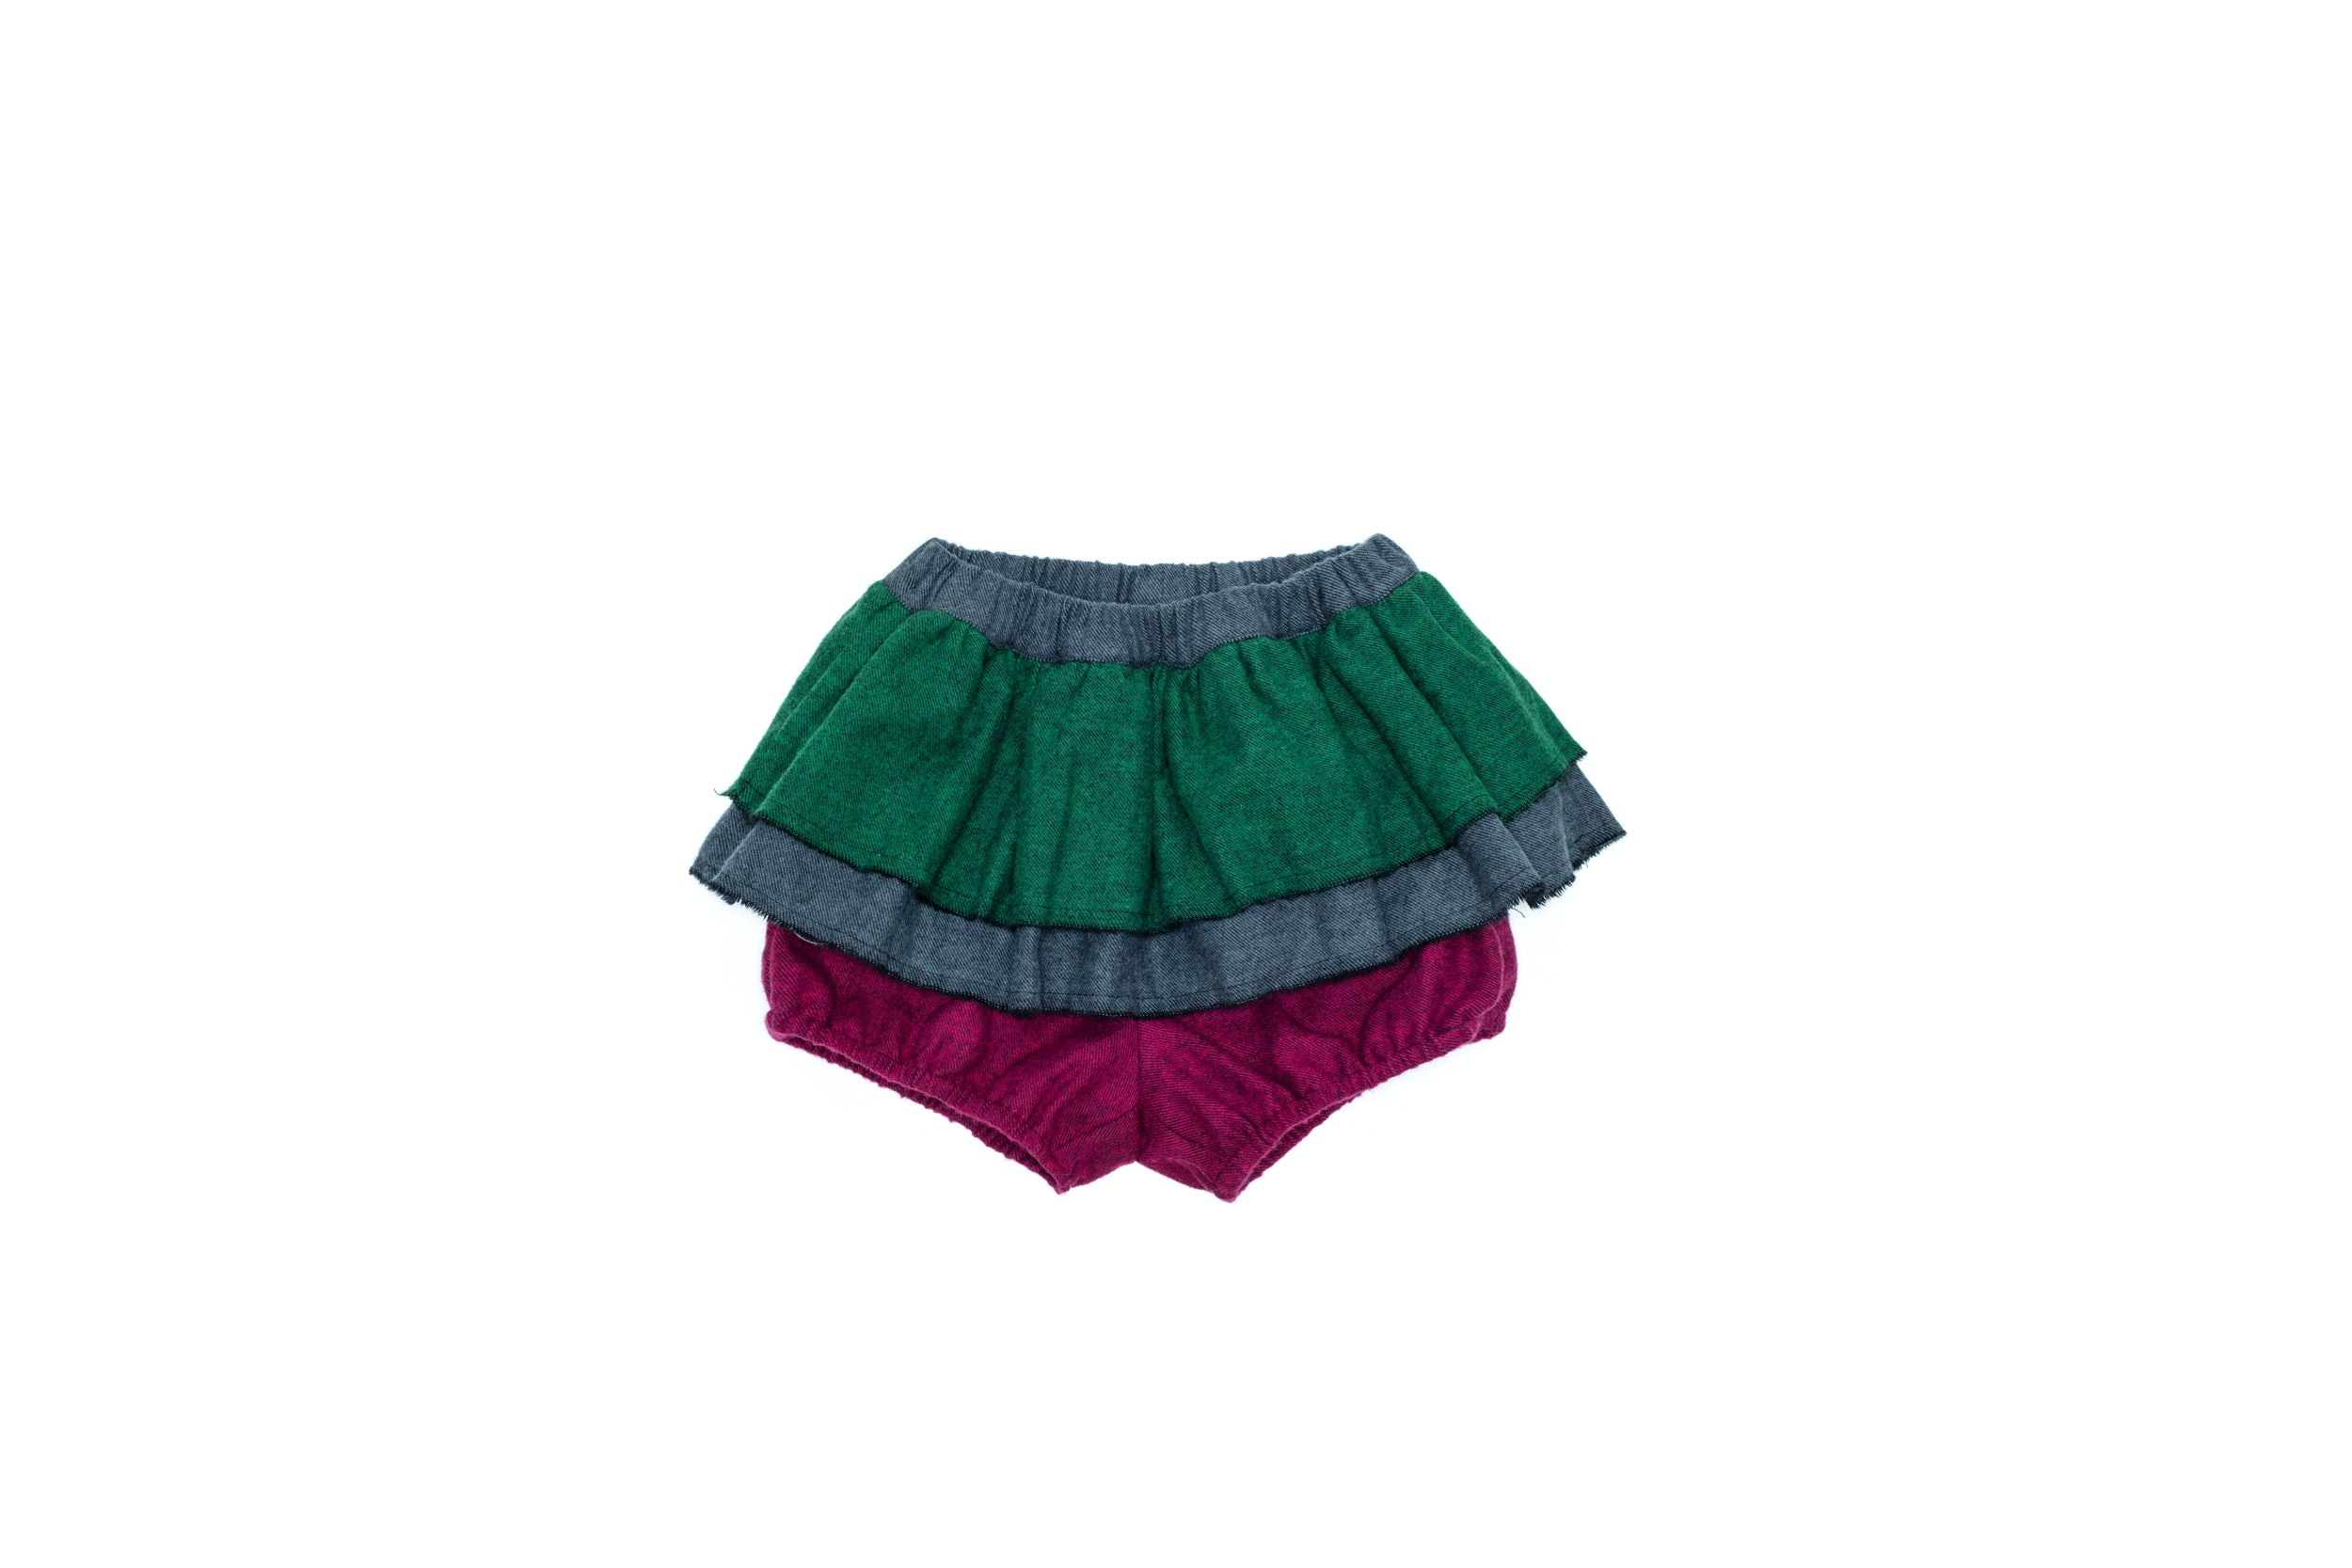 Party Ruffle Shorts